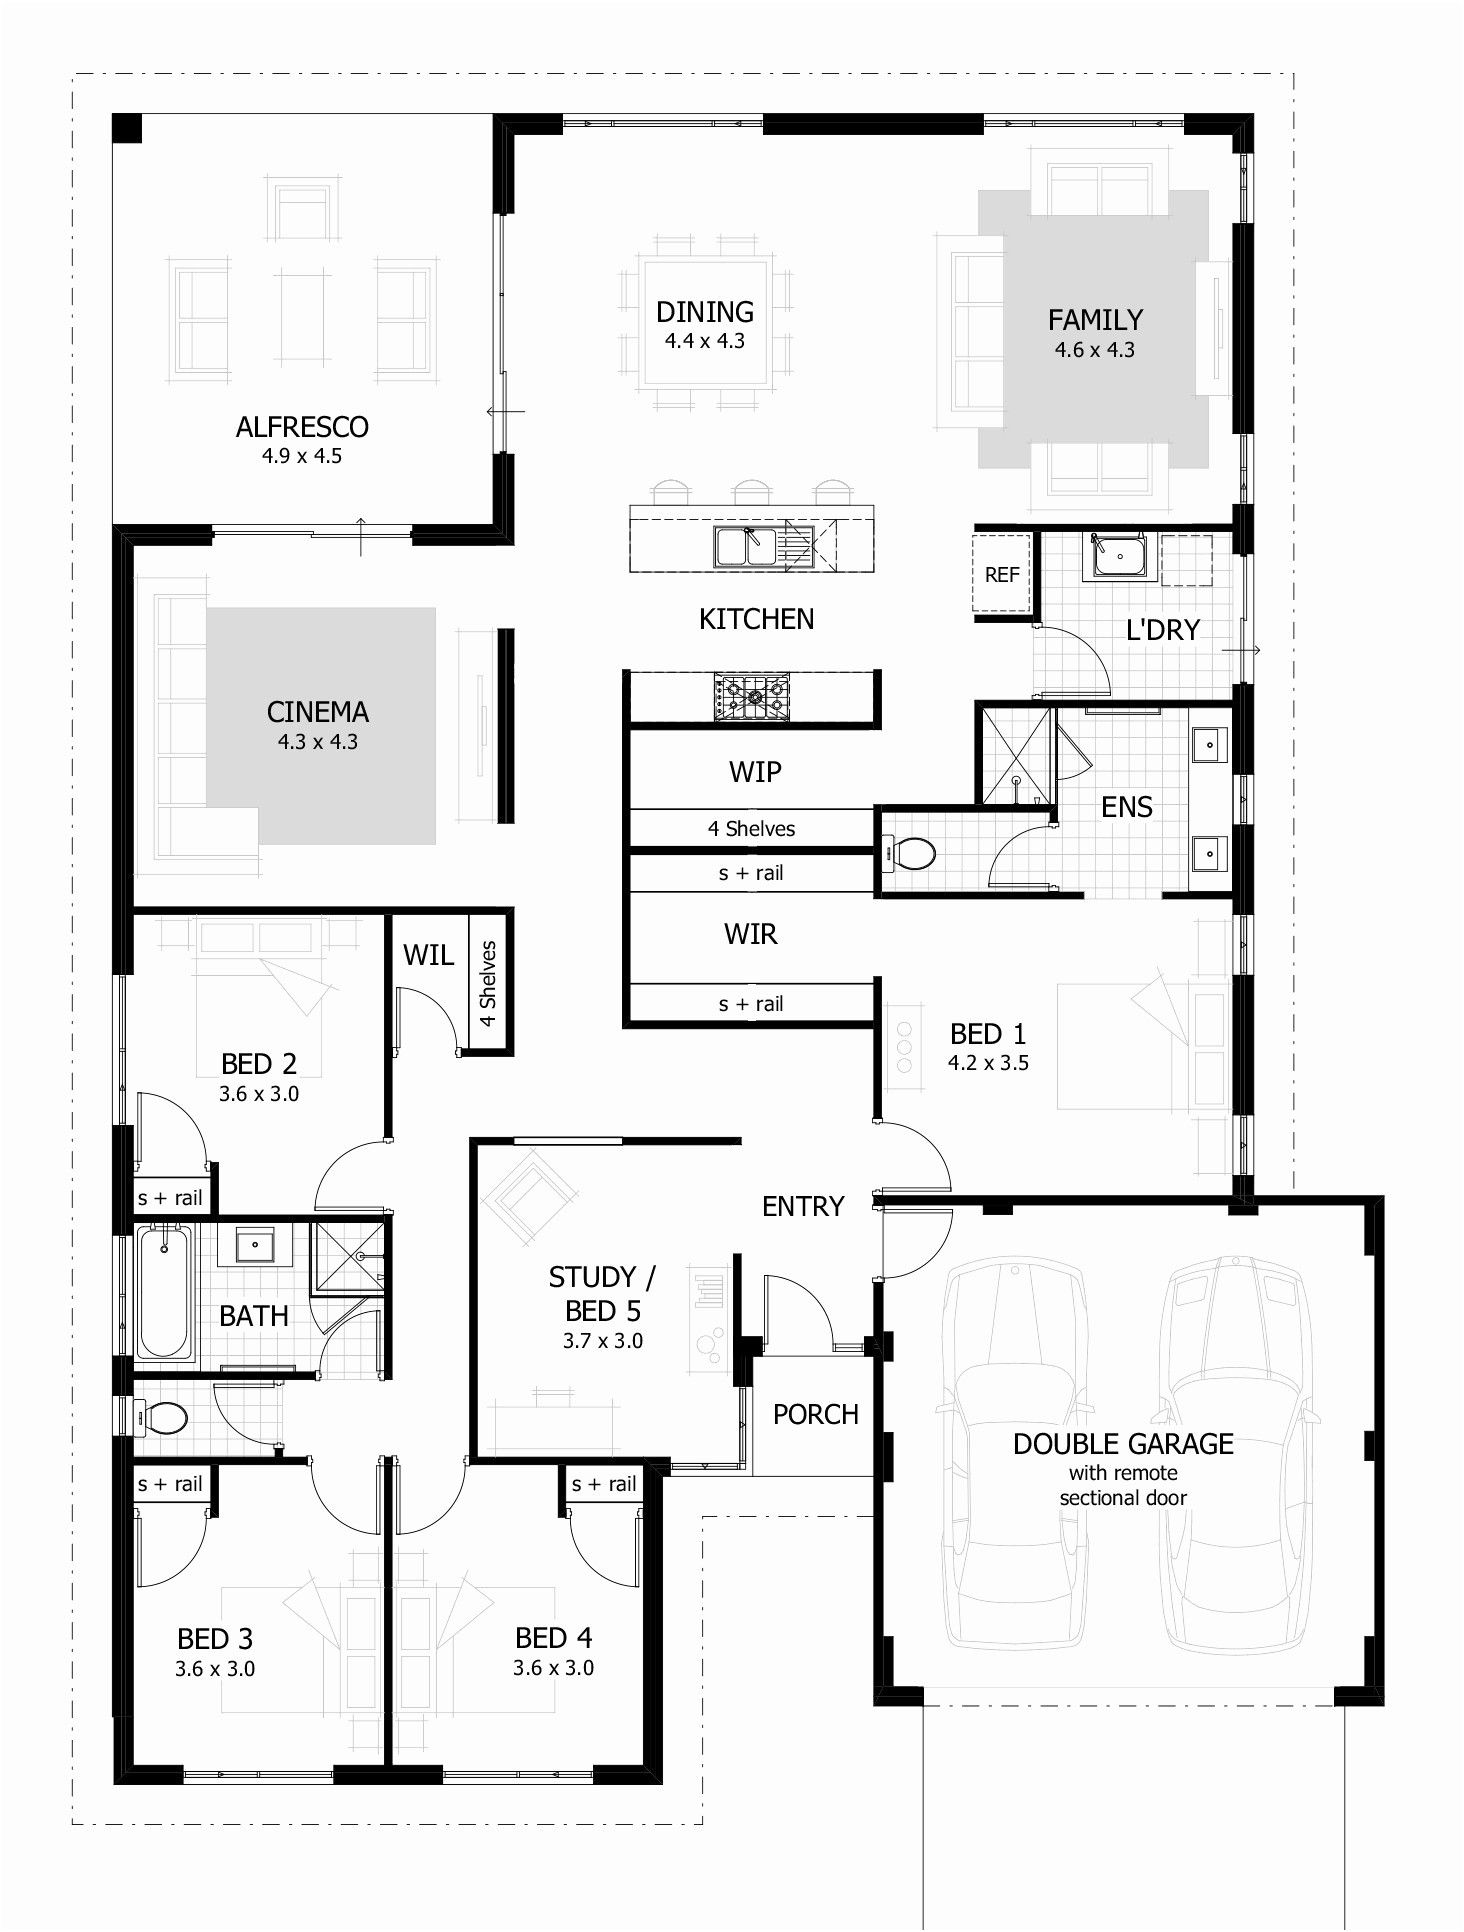 122 Bedroom 12 Story House Plans  Floor plan design, Free house